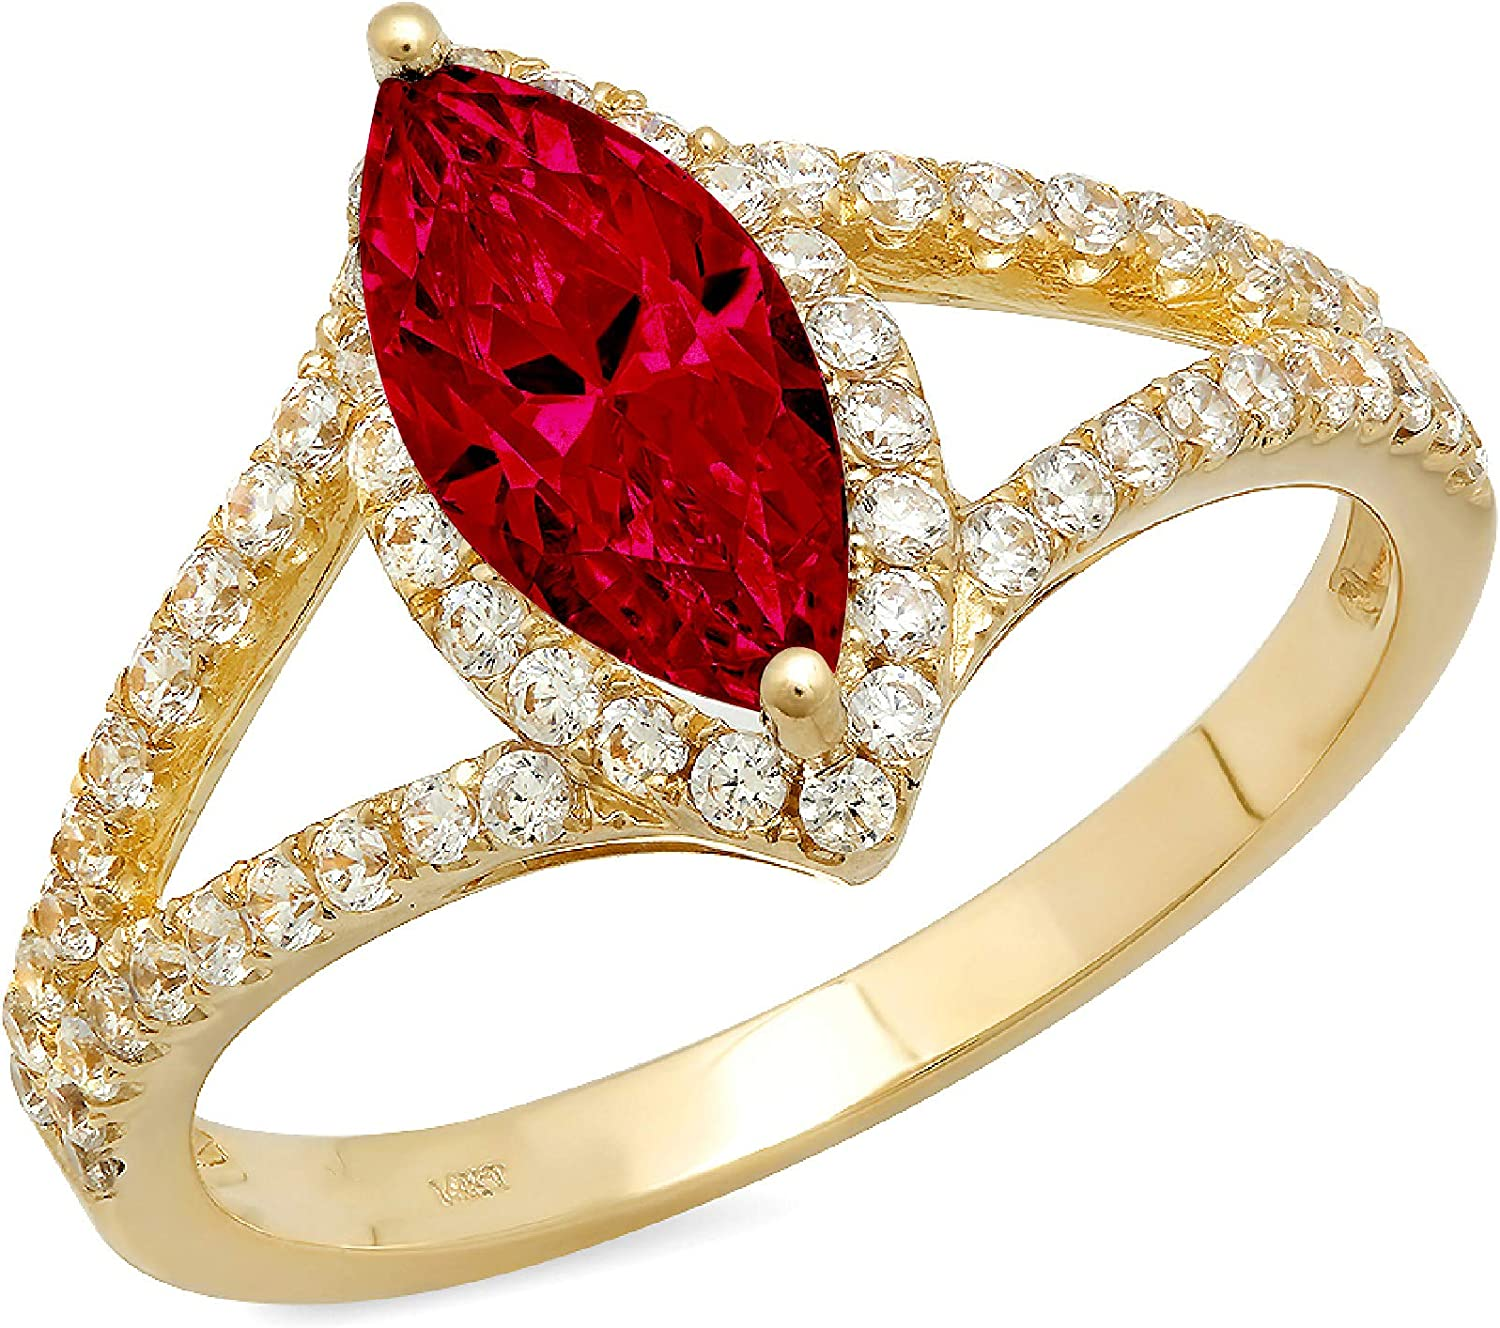 1.17ct Max Genuine 51% OFF Marquise Cut Solitaire split Natural shank R Halo Scarlet